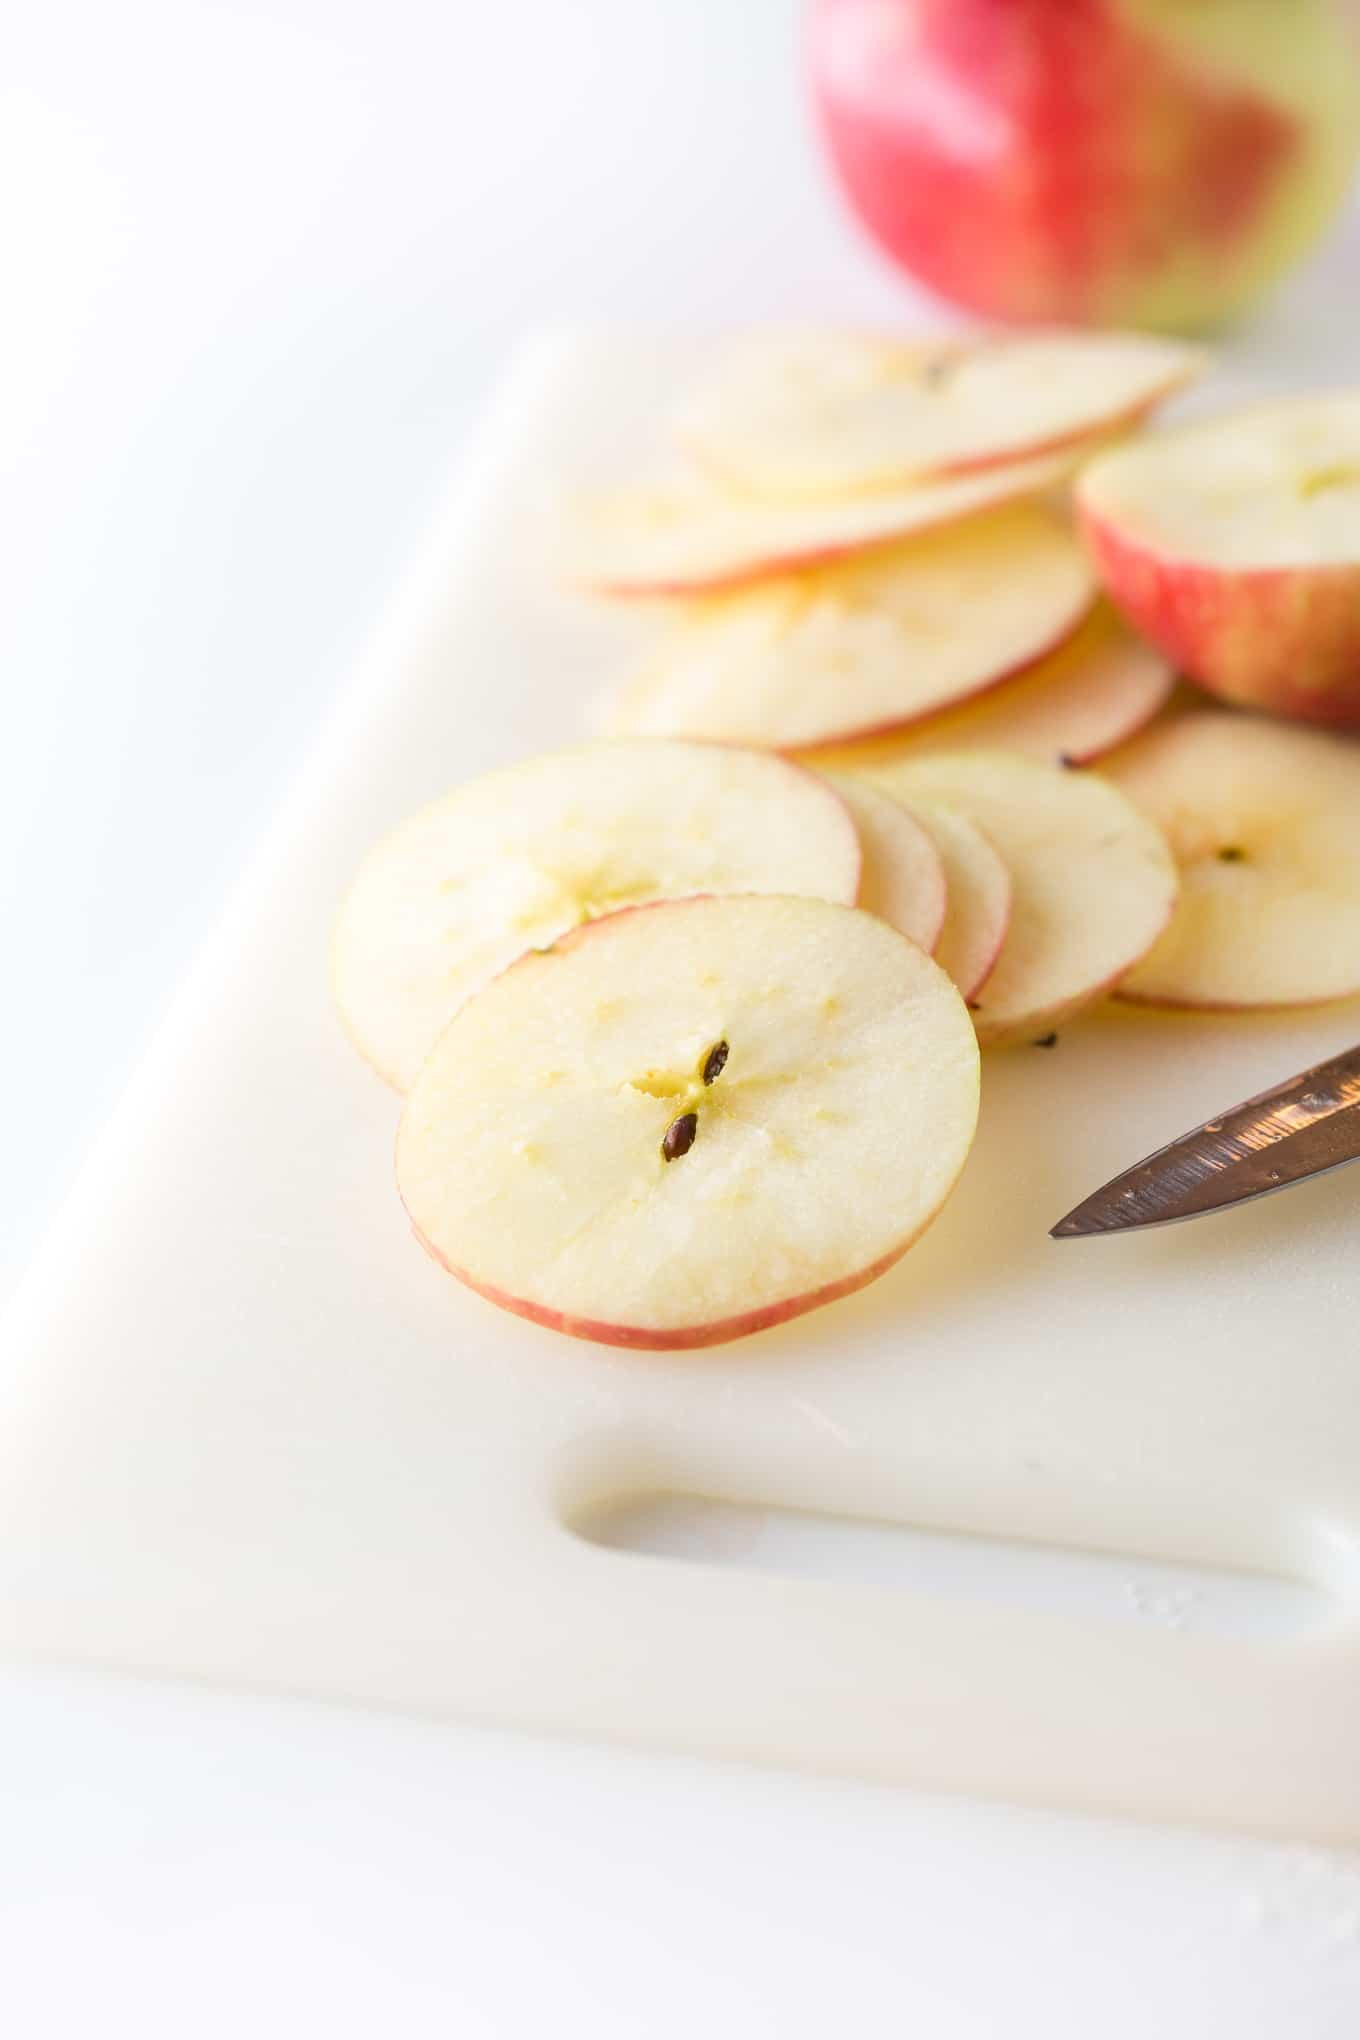 Cutting slices of honeycrisp apples with knife for apple chips.